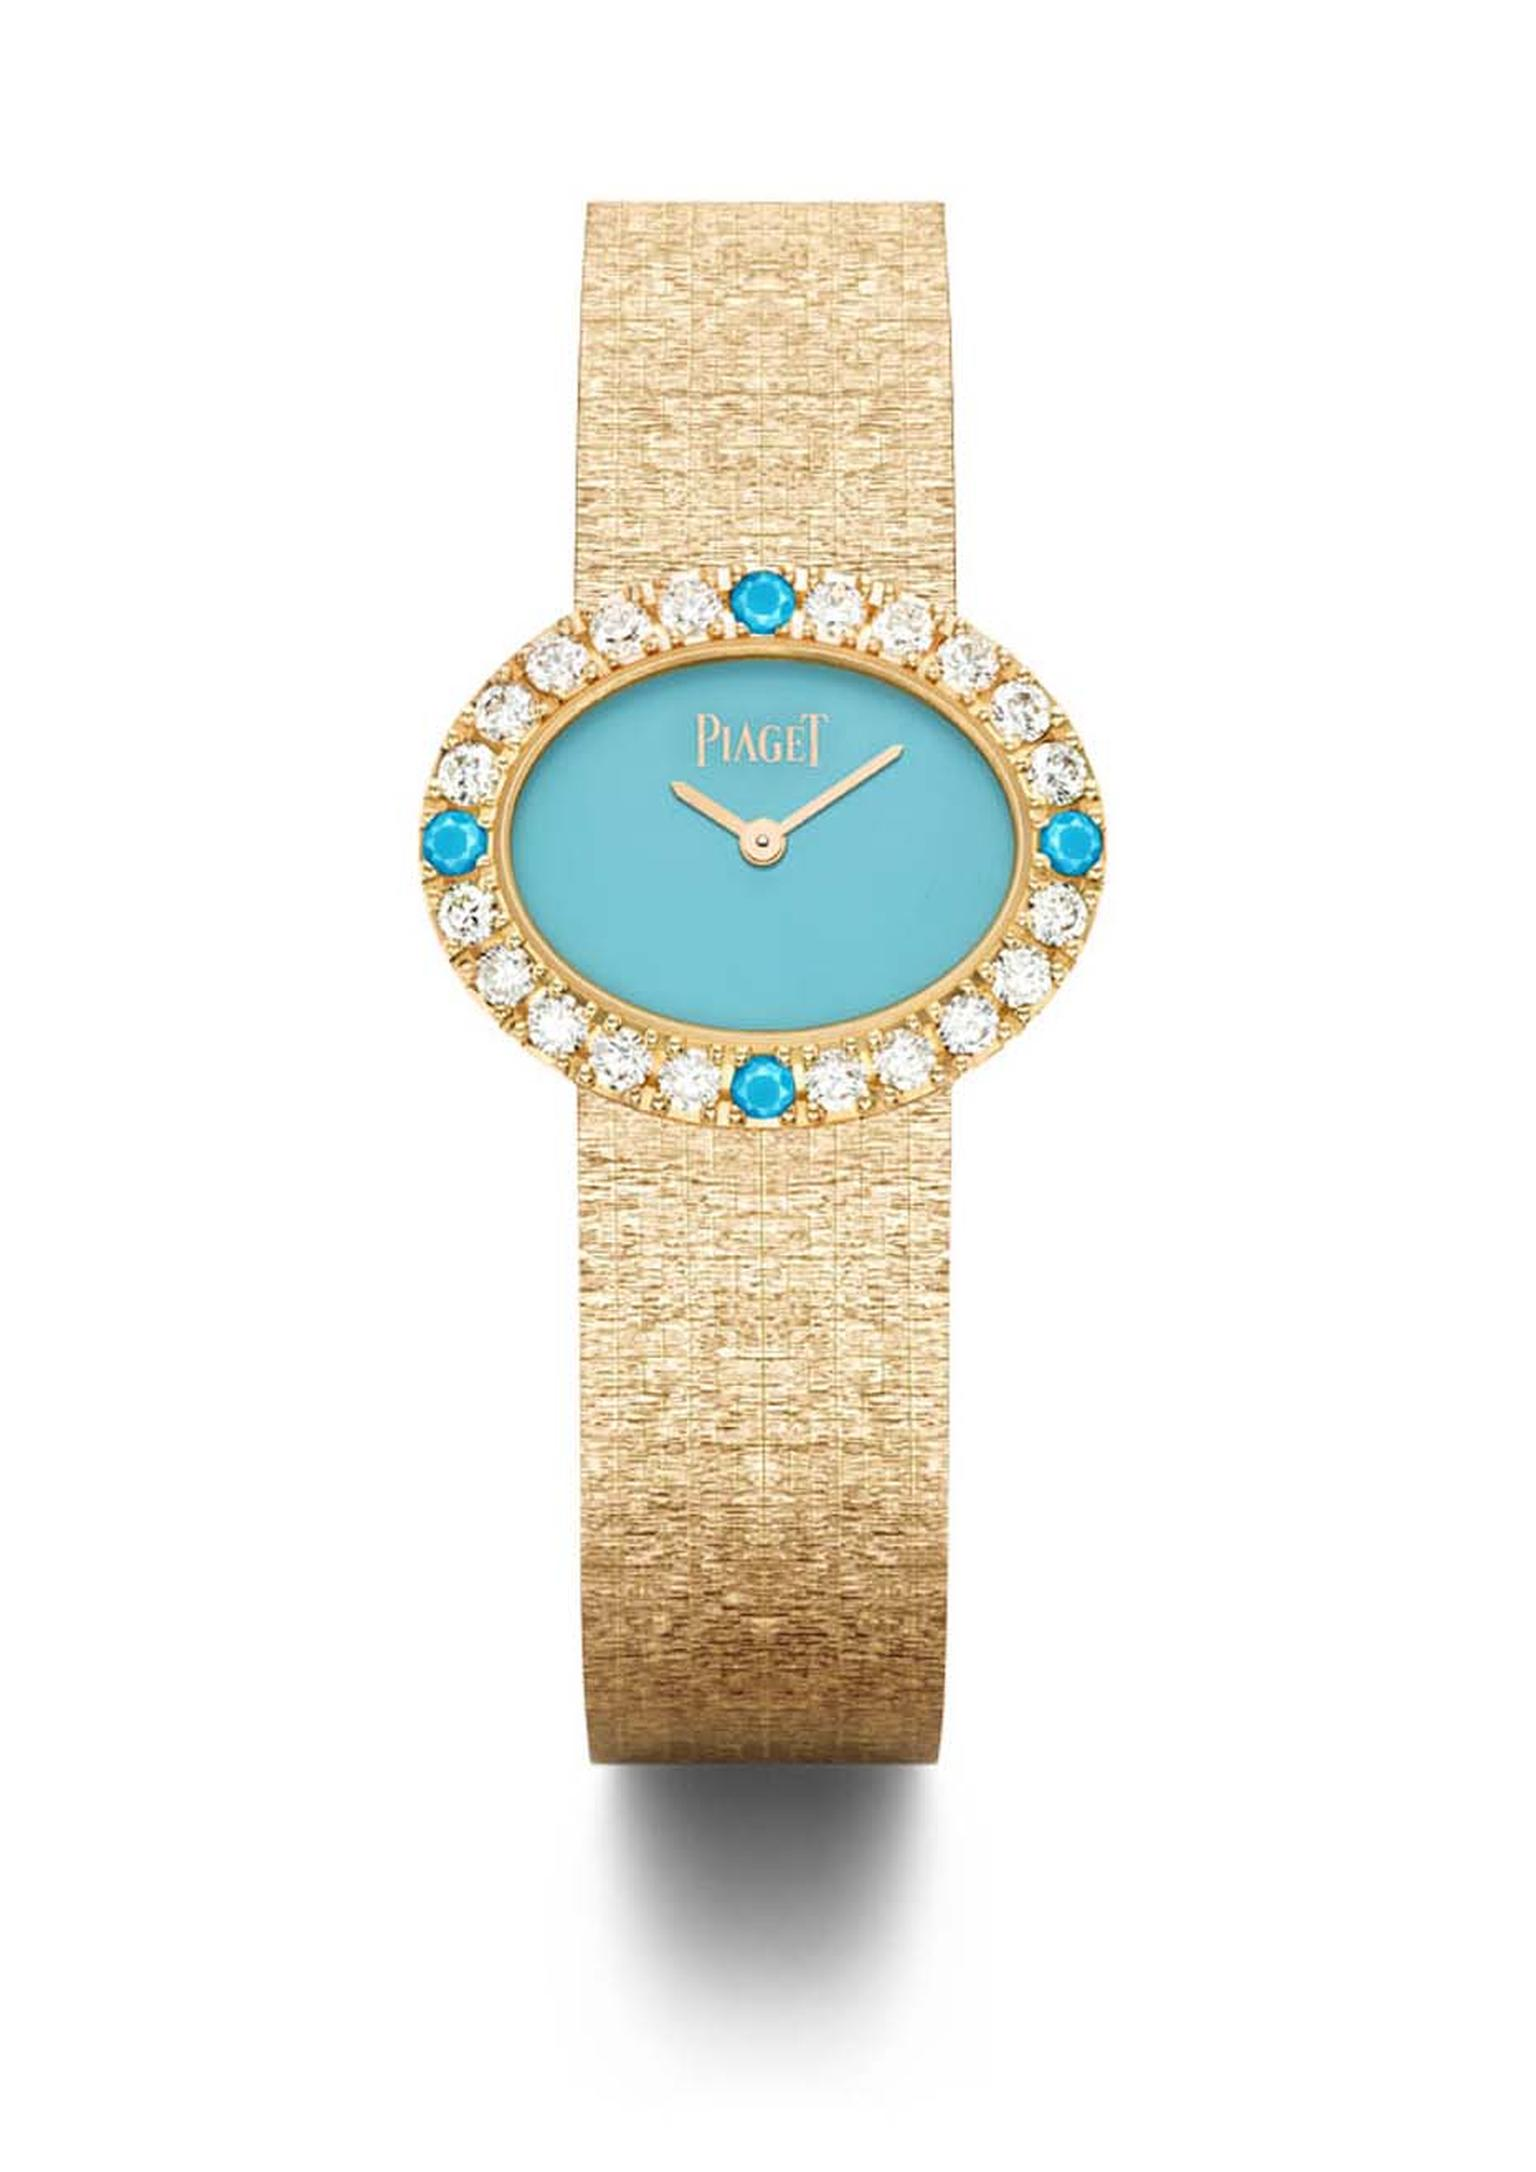 Piaget traditional 18ct pink gold oval watch, featuring a turquoise dial, set with 20 brilliant-cut diamonds and 4 turquoise cabochons.